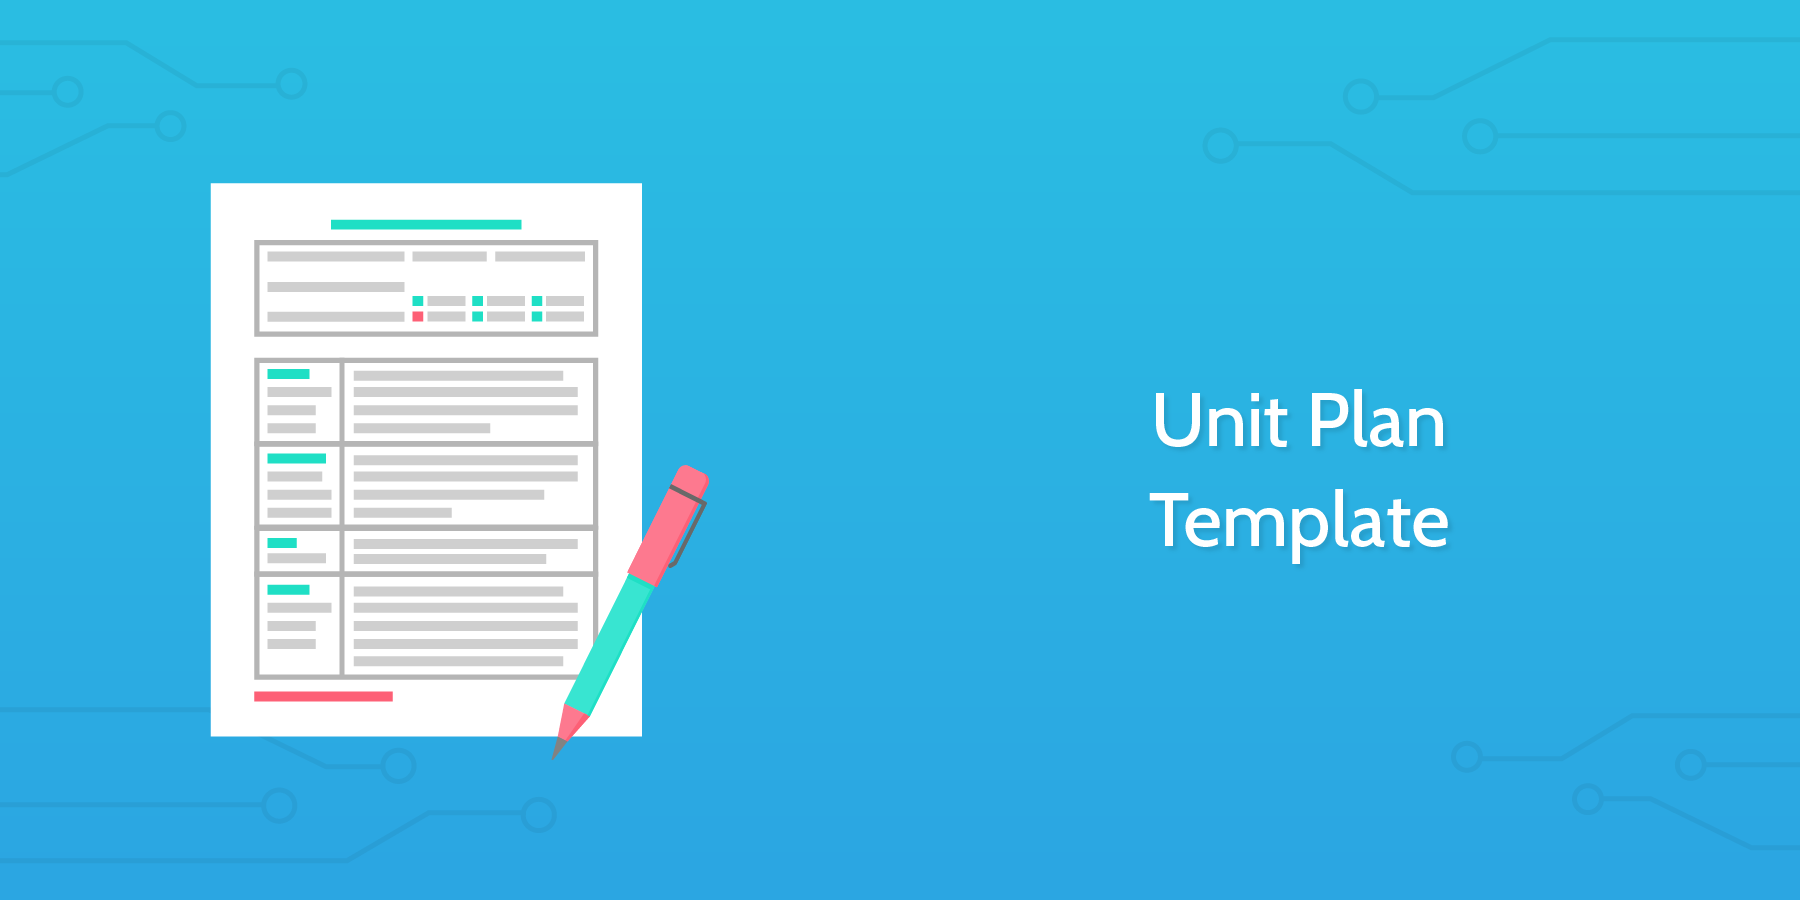 Unit Plan Template - Process Street